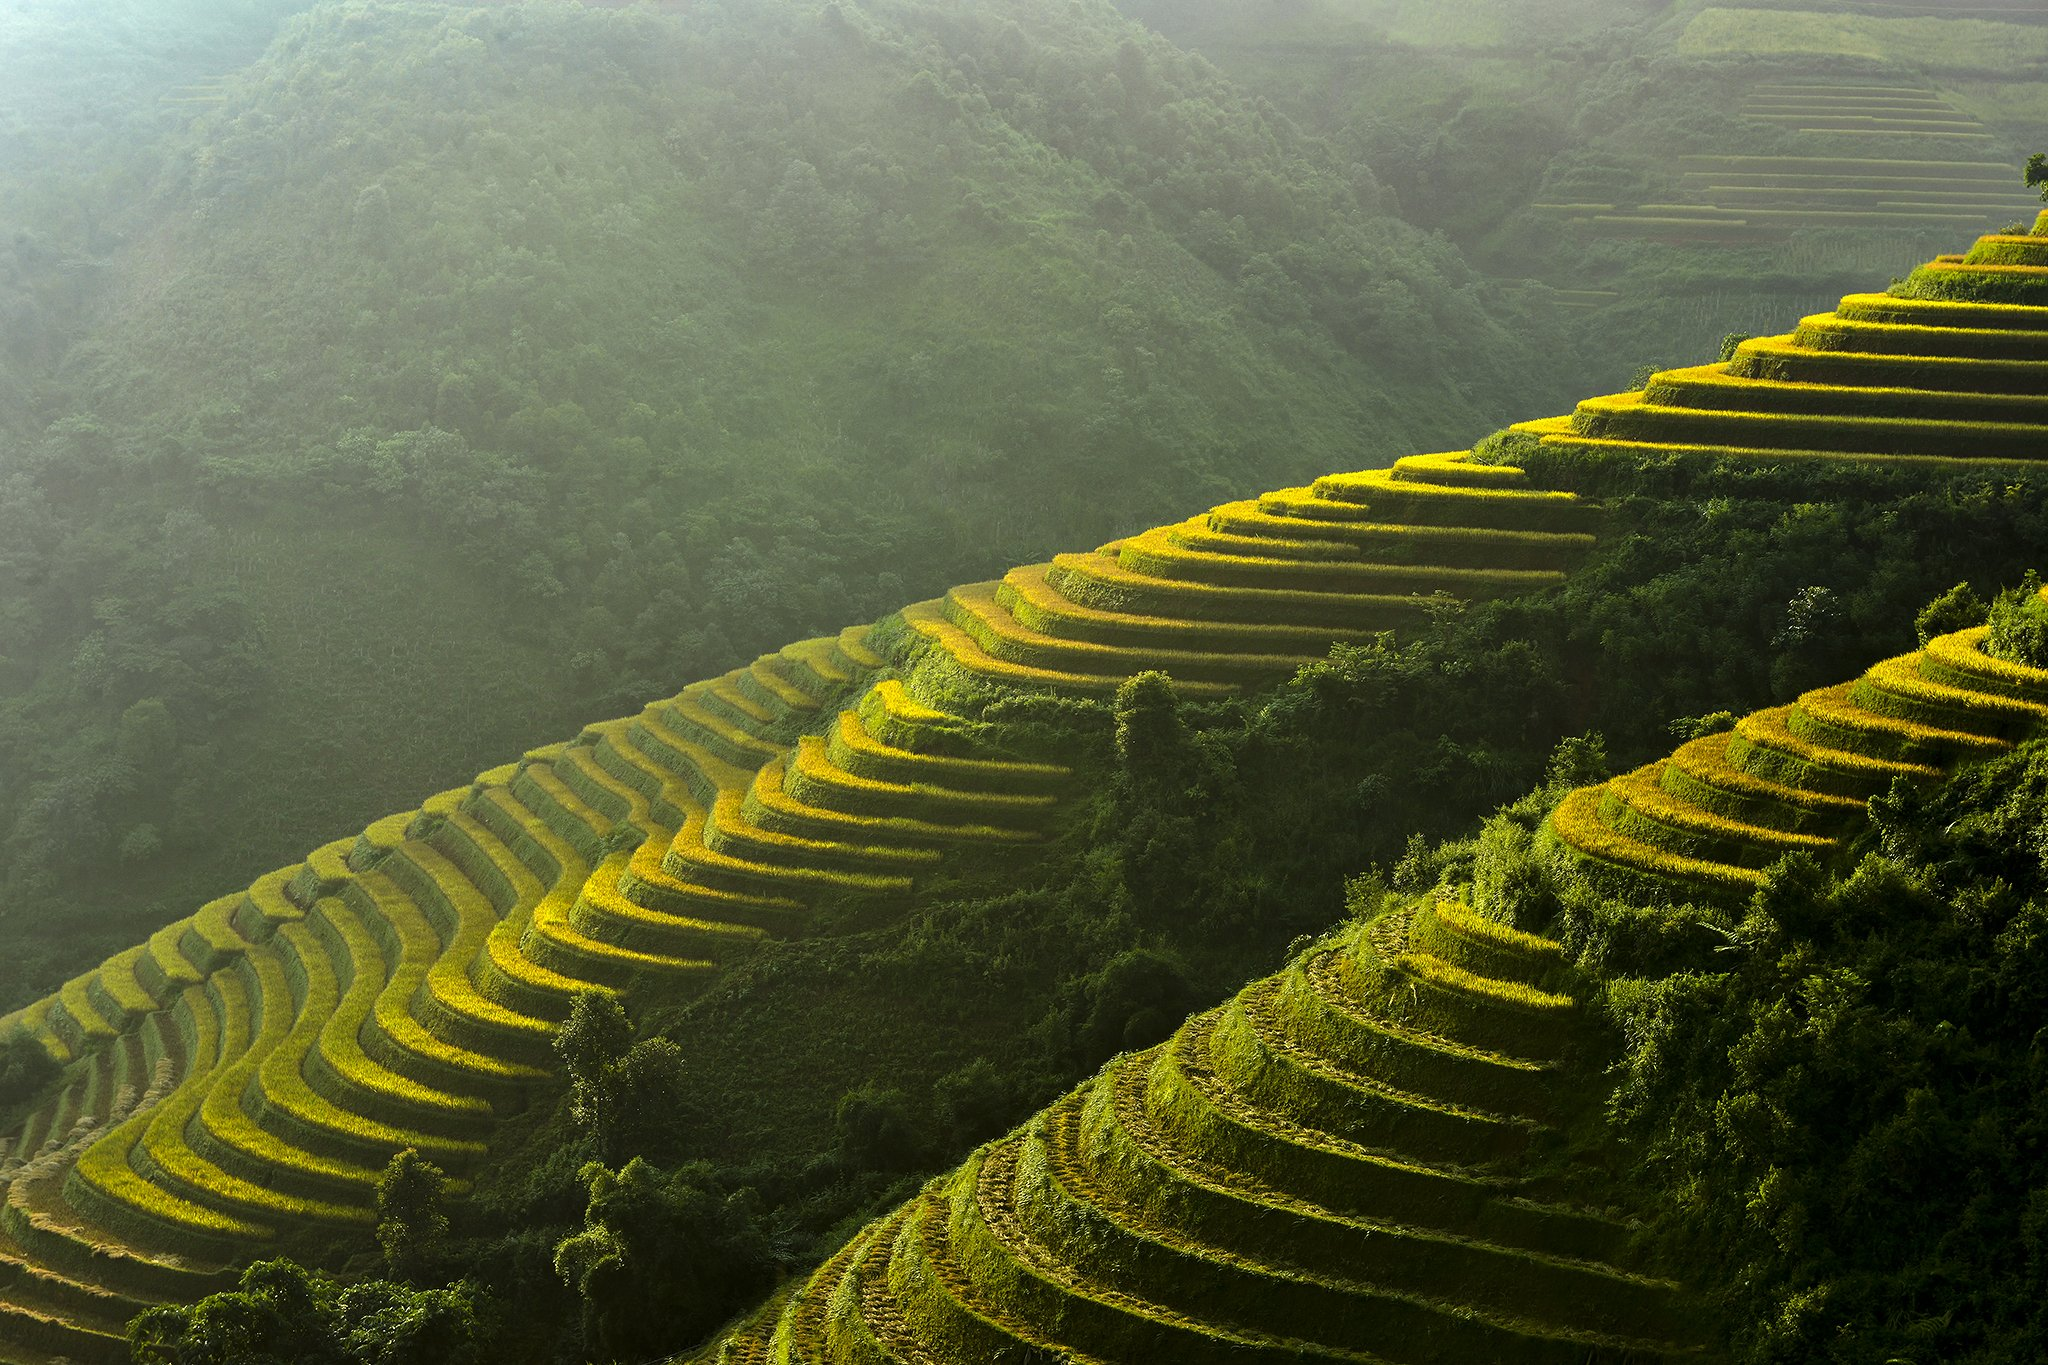 Asia, Asian, Field, Paddy, Rice, Terraces rice field, Saravut Whanset